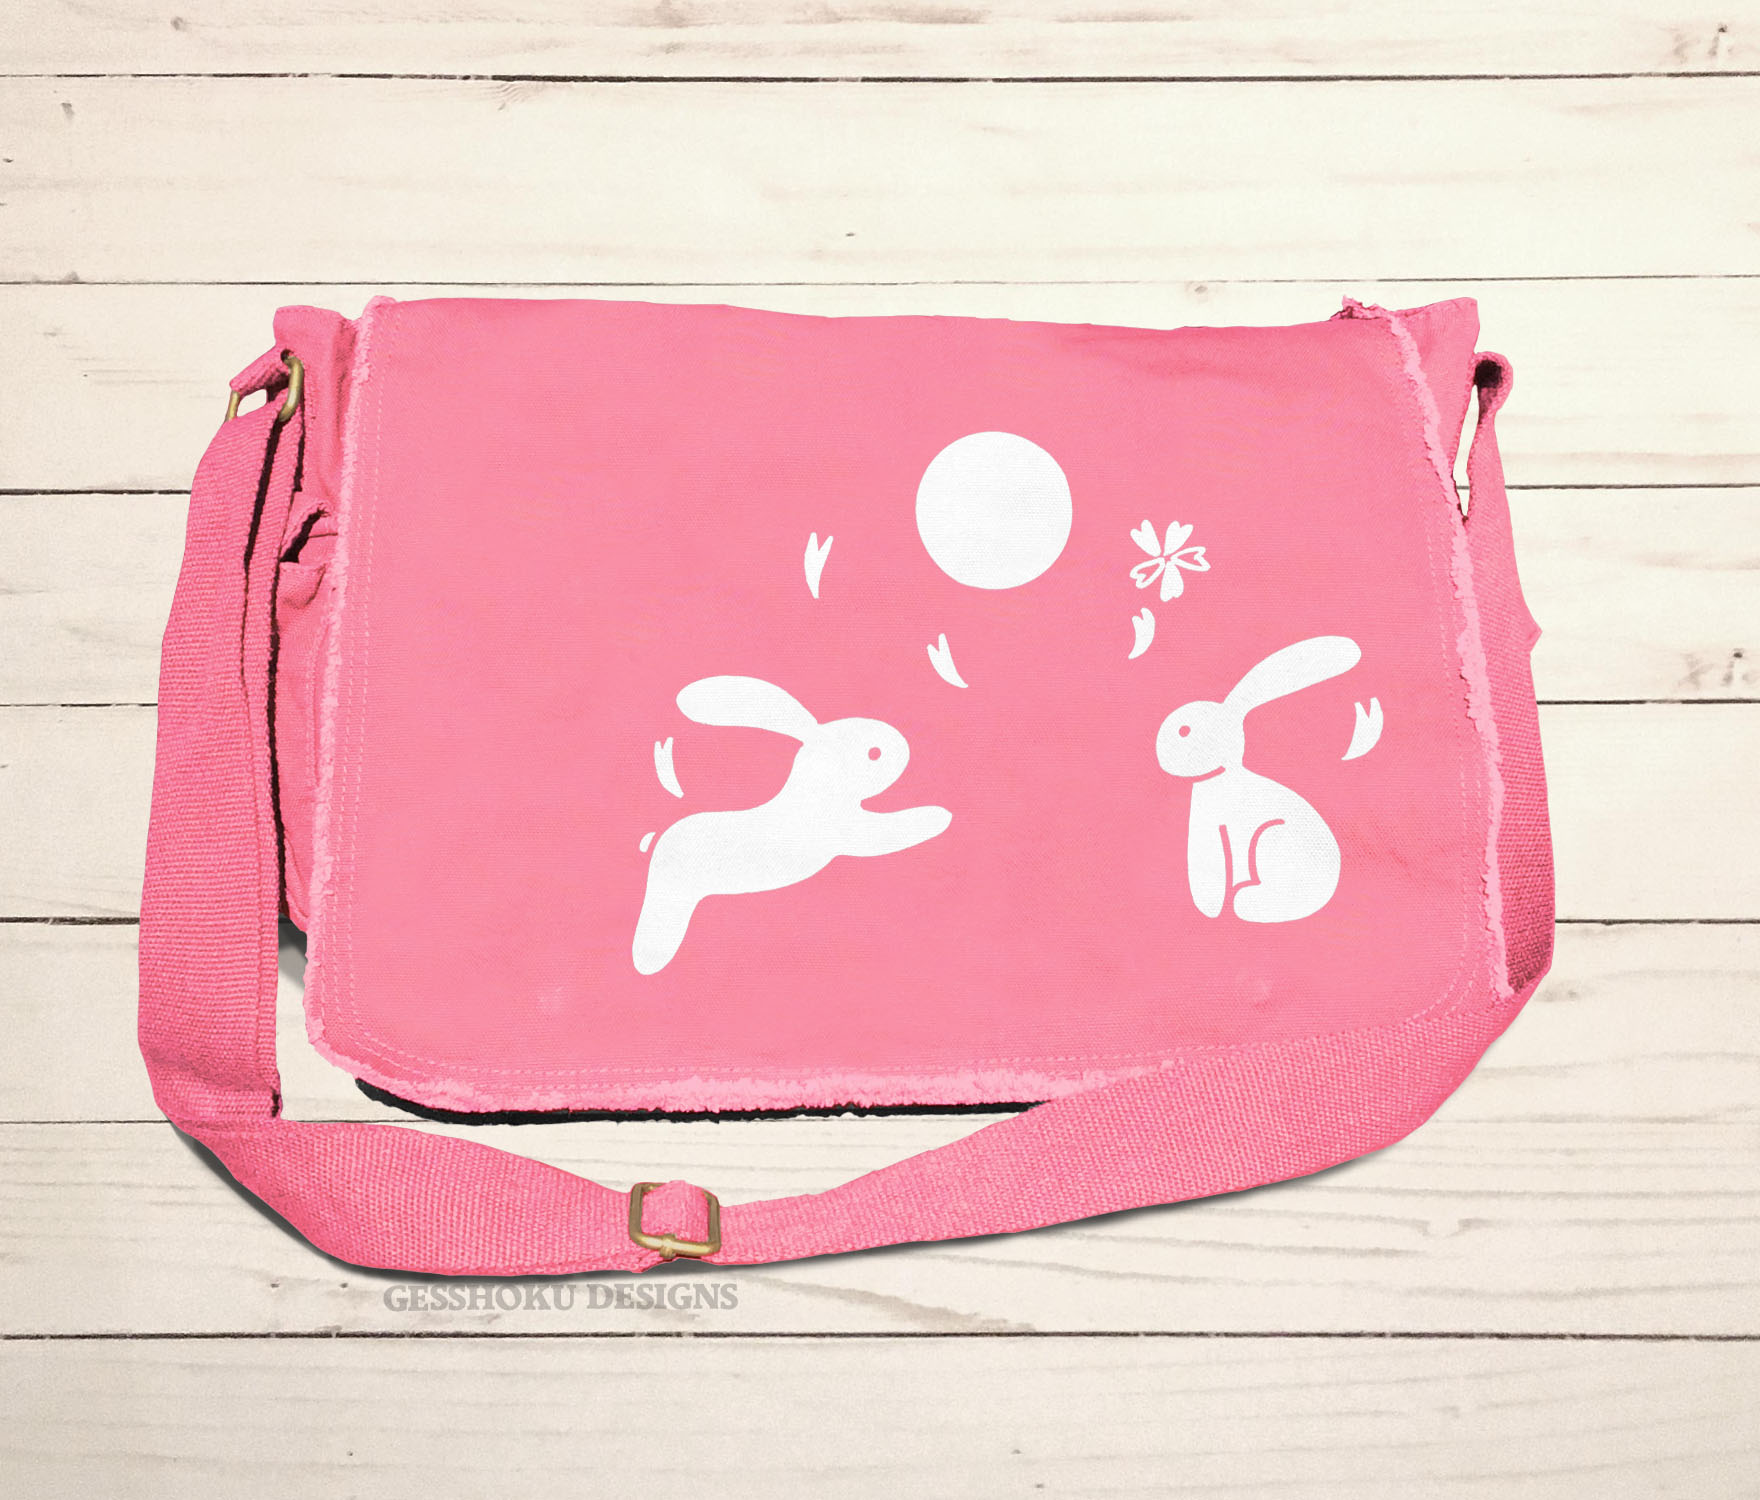 Asian Moon Bunnies Messenger Bag - Pink